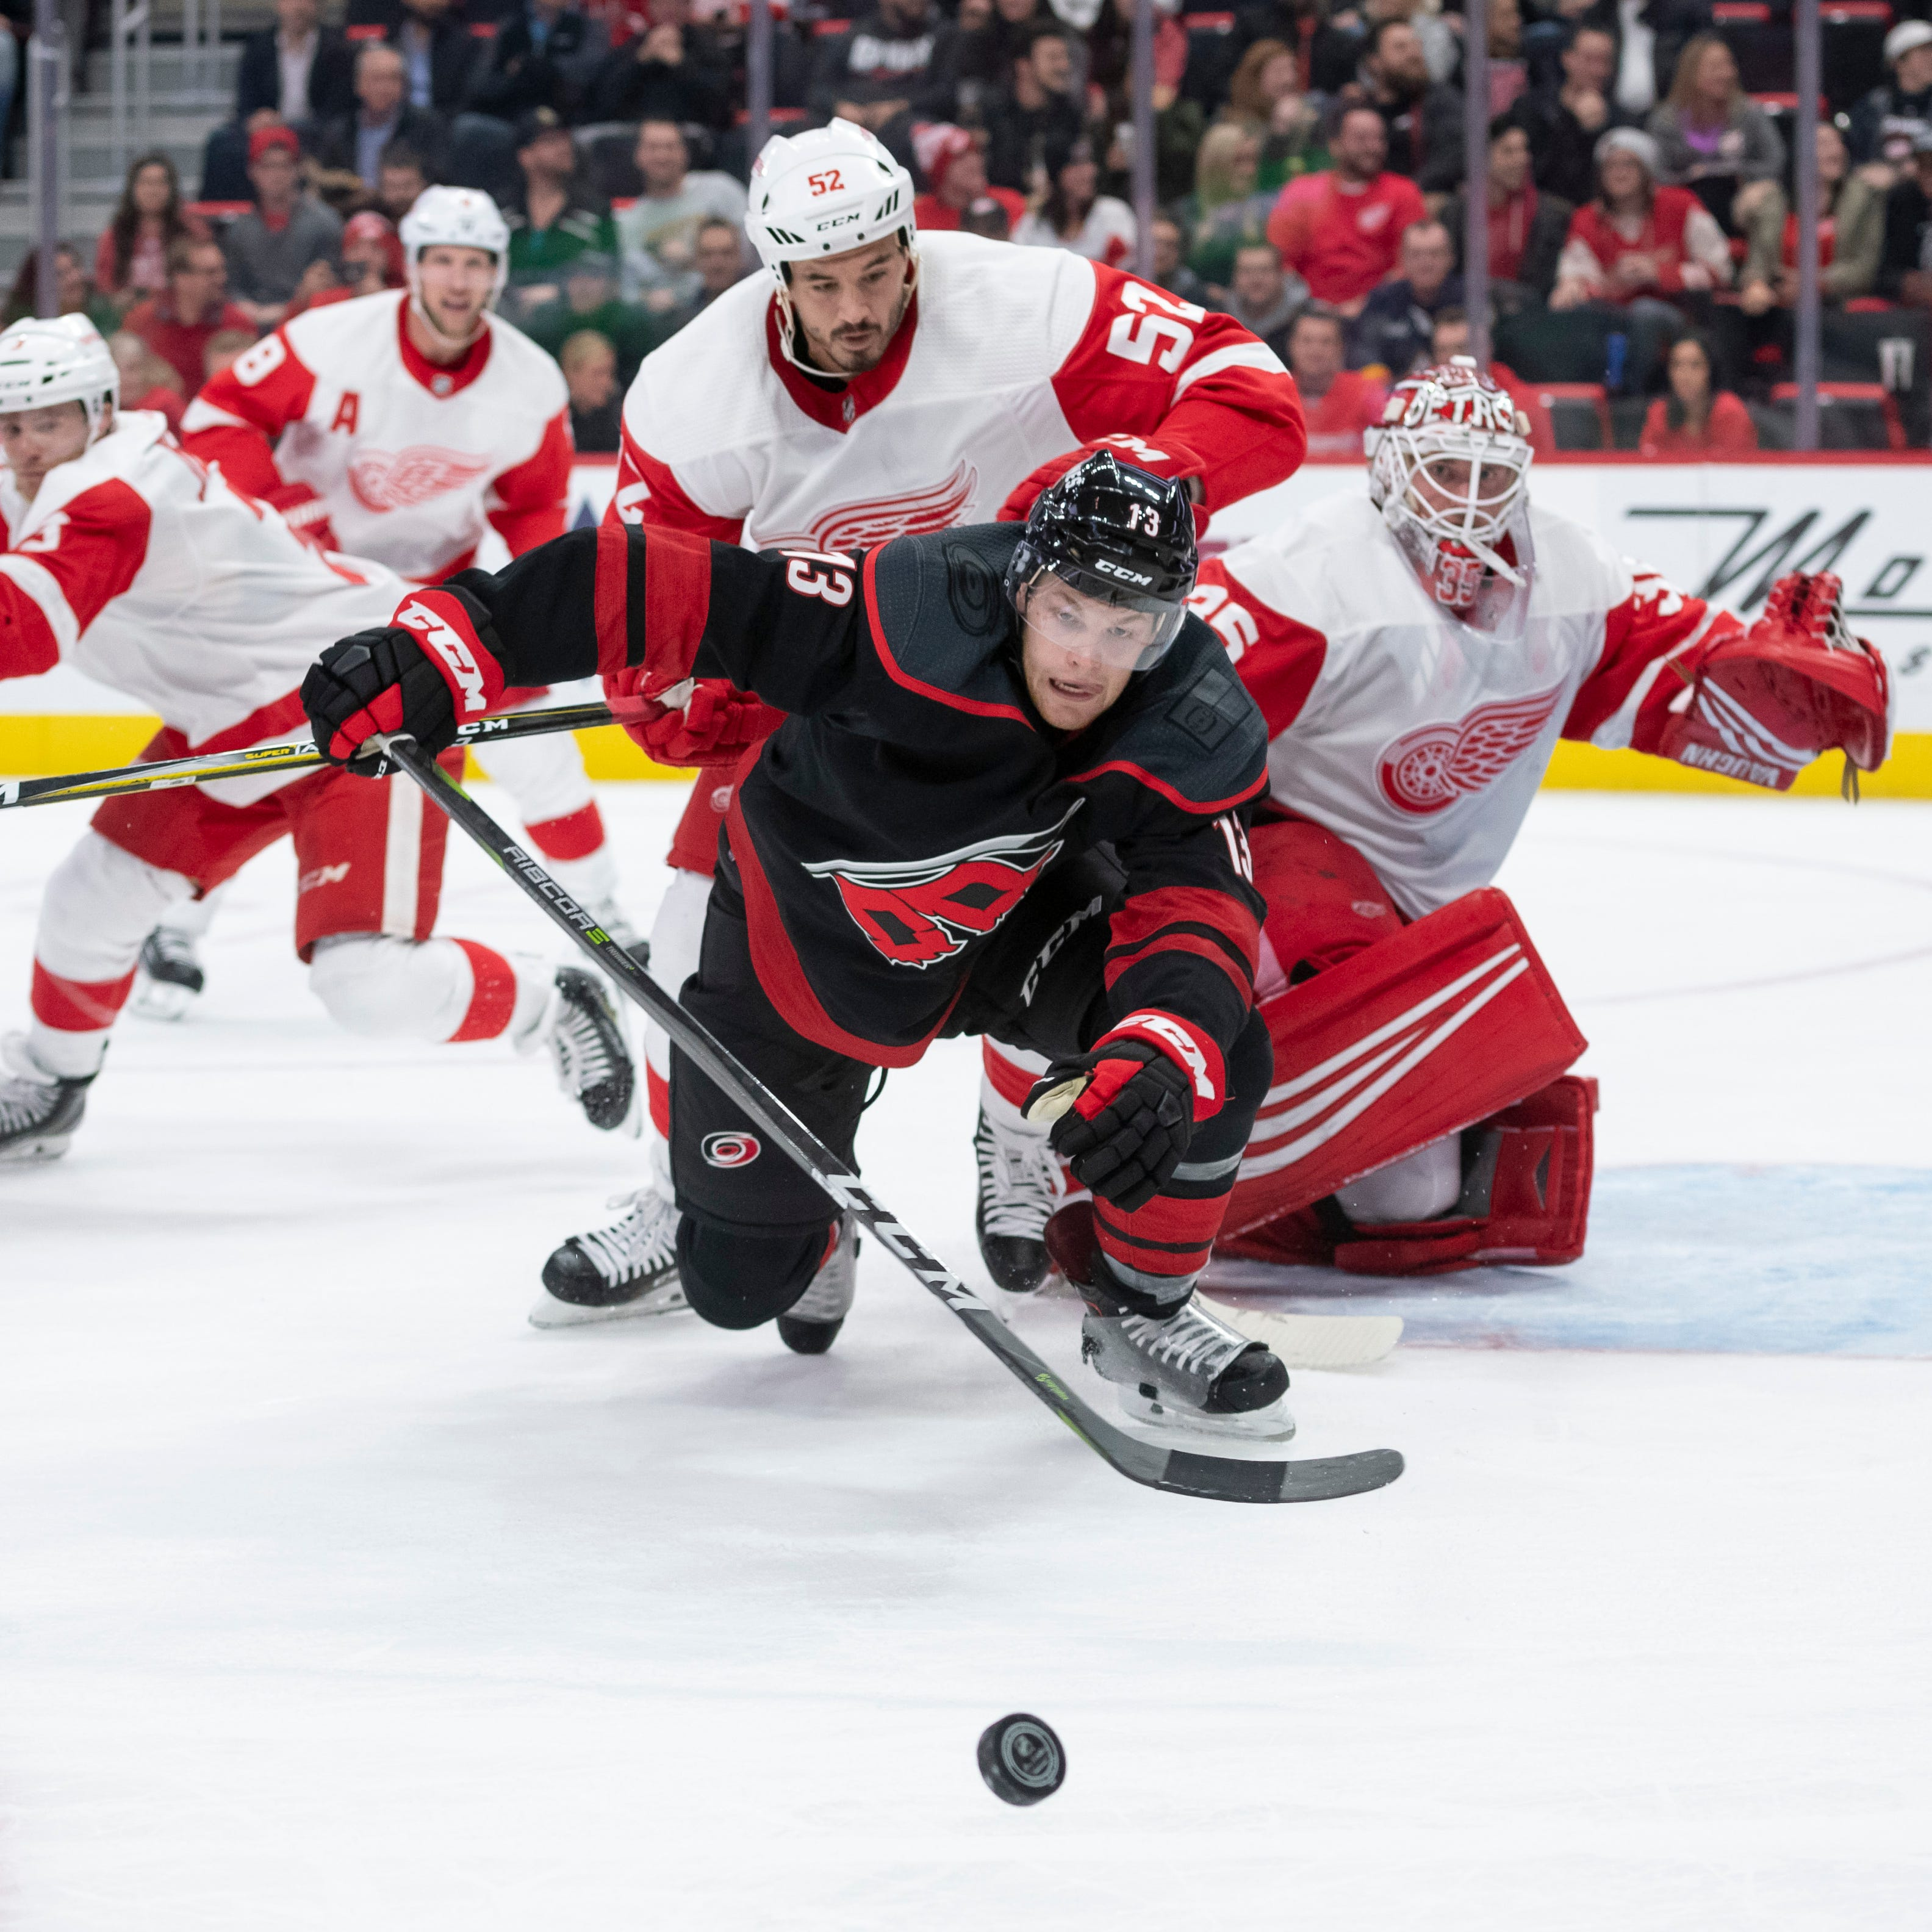 Hurricanes hold on late to defeat Red Wings